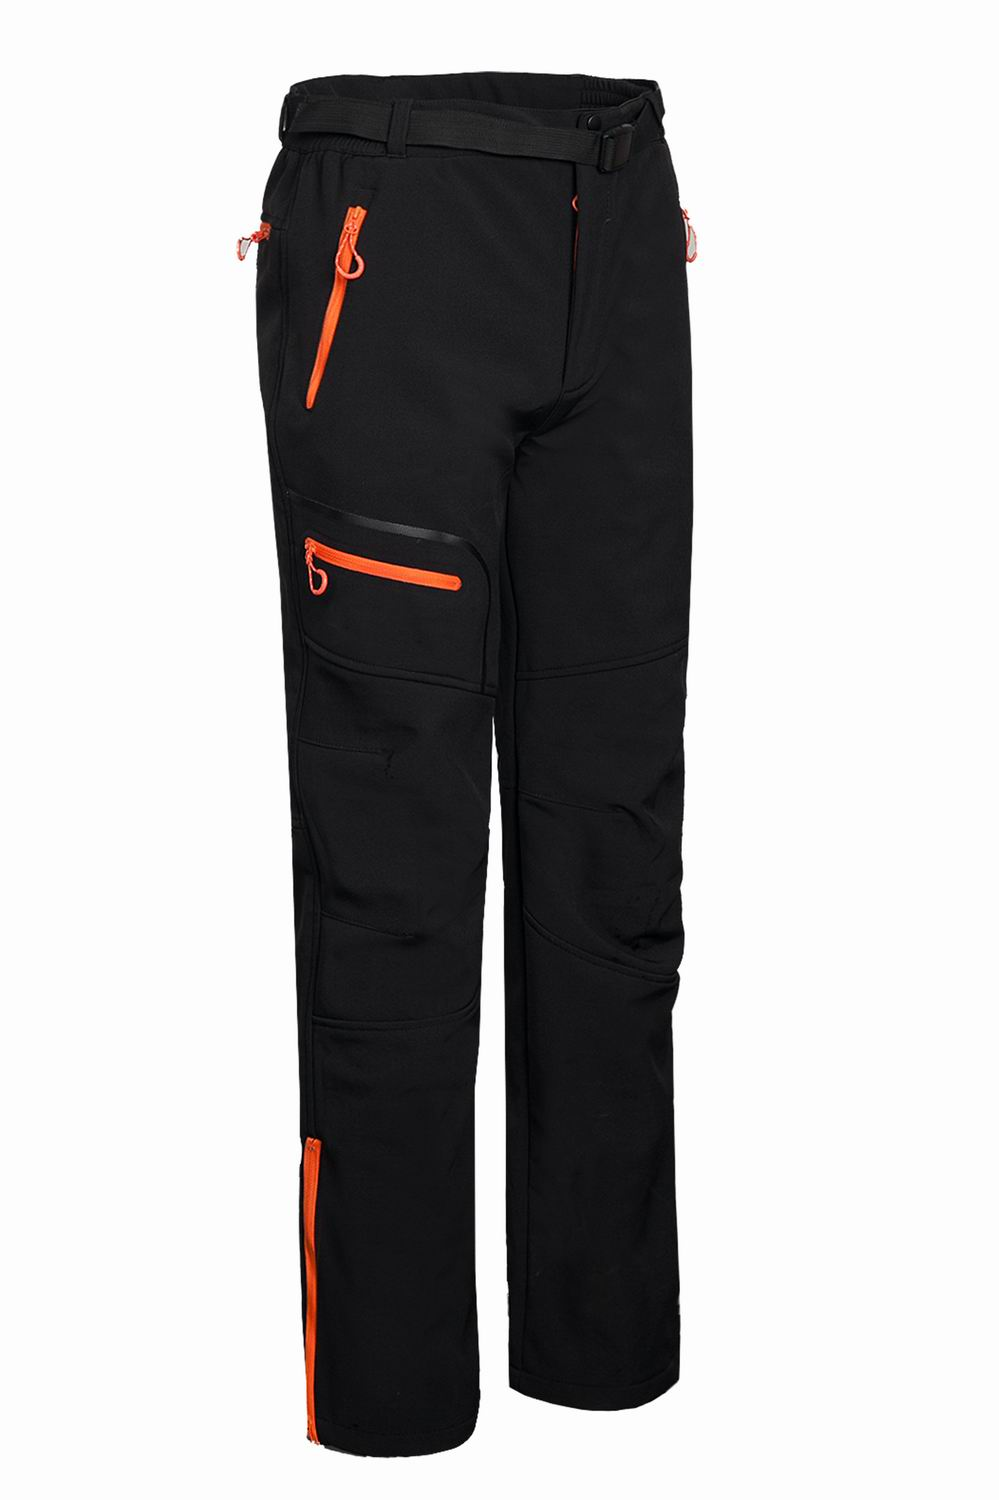 Warm Winter Men Soft Shell Pants Waterproof Pants Fleece Windproof Skiing Trousers 1612